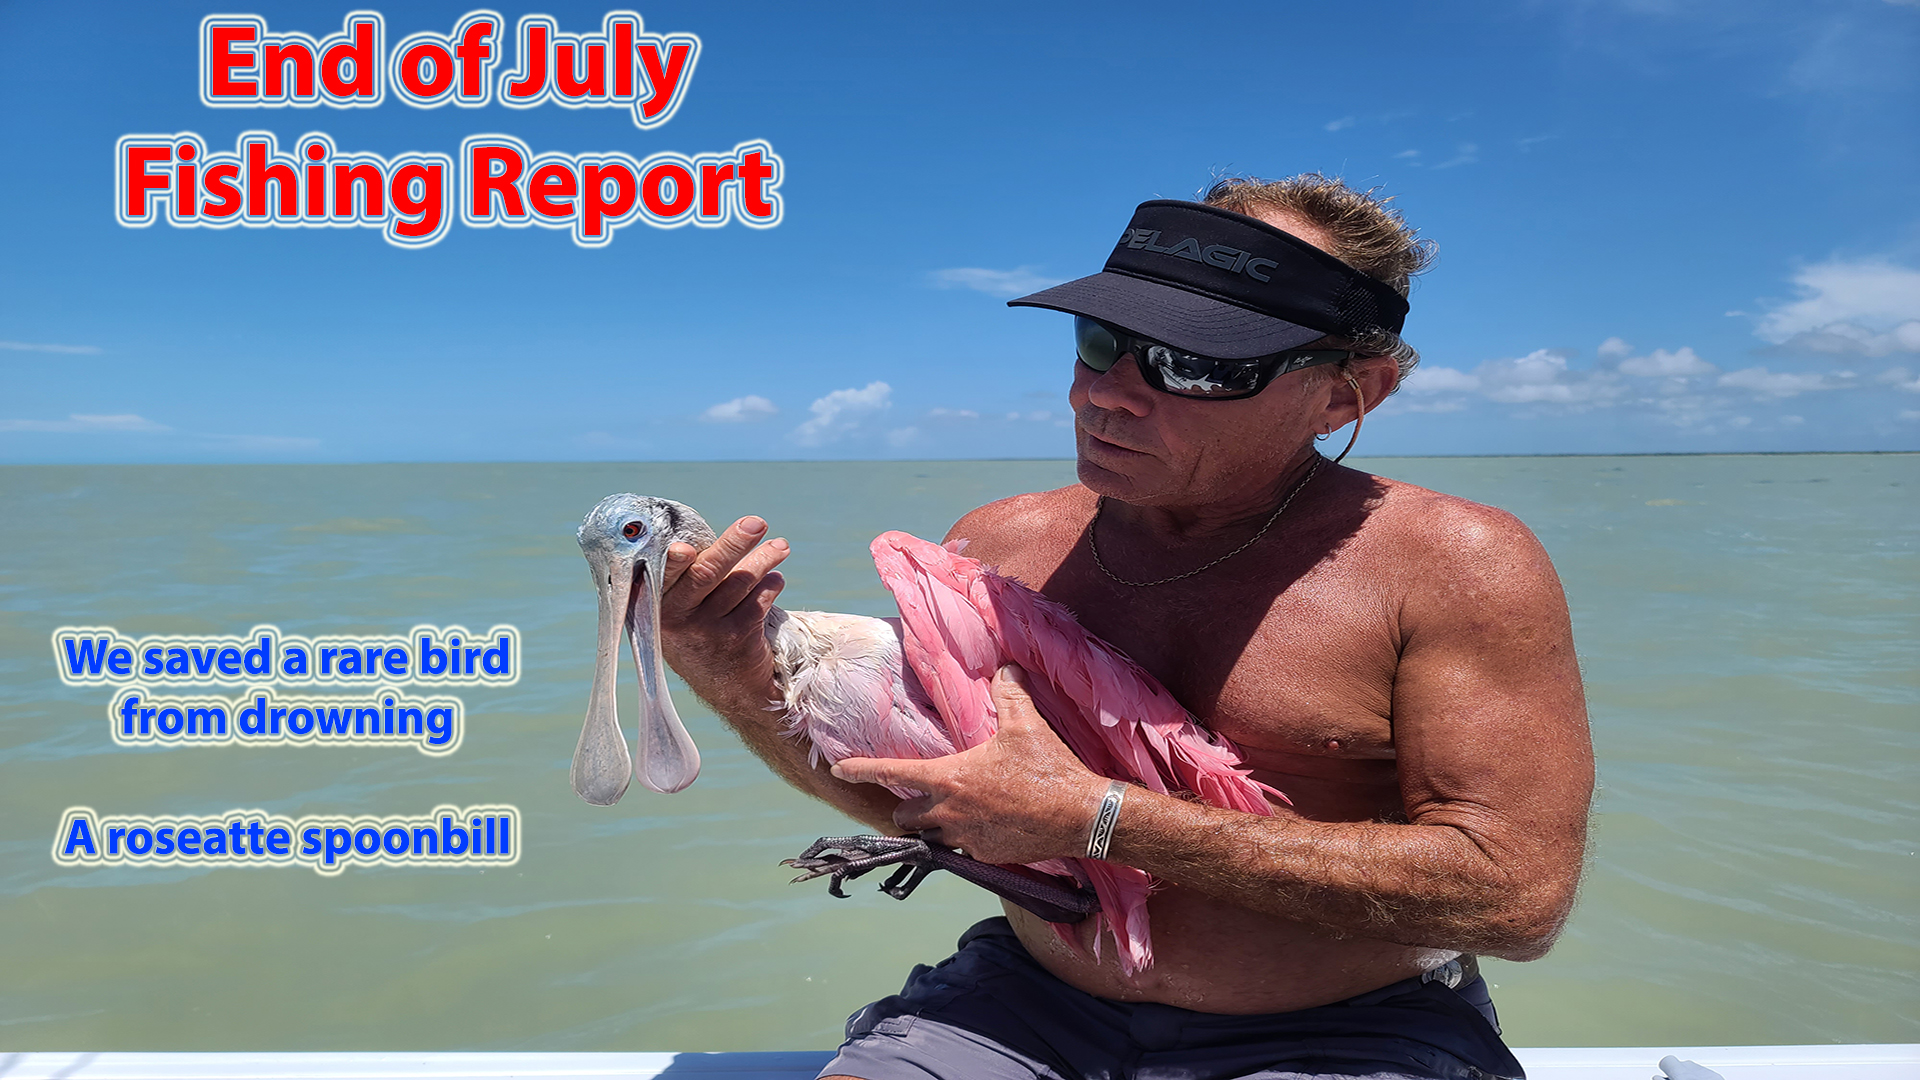 End of July Fishing Report